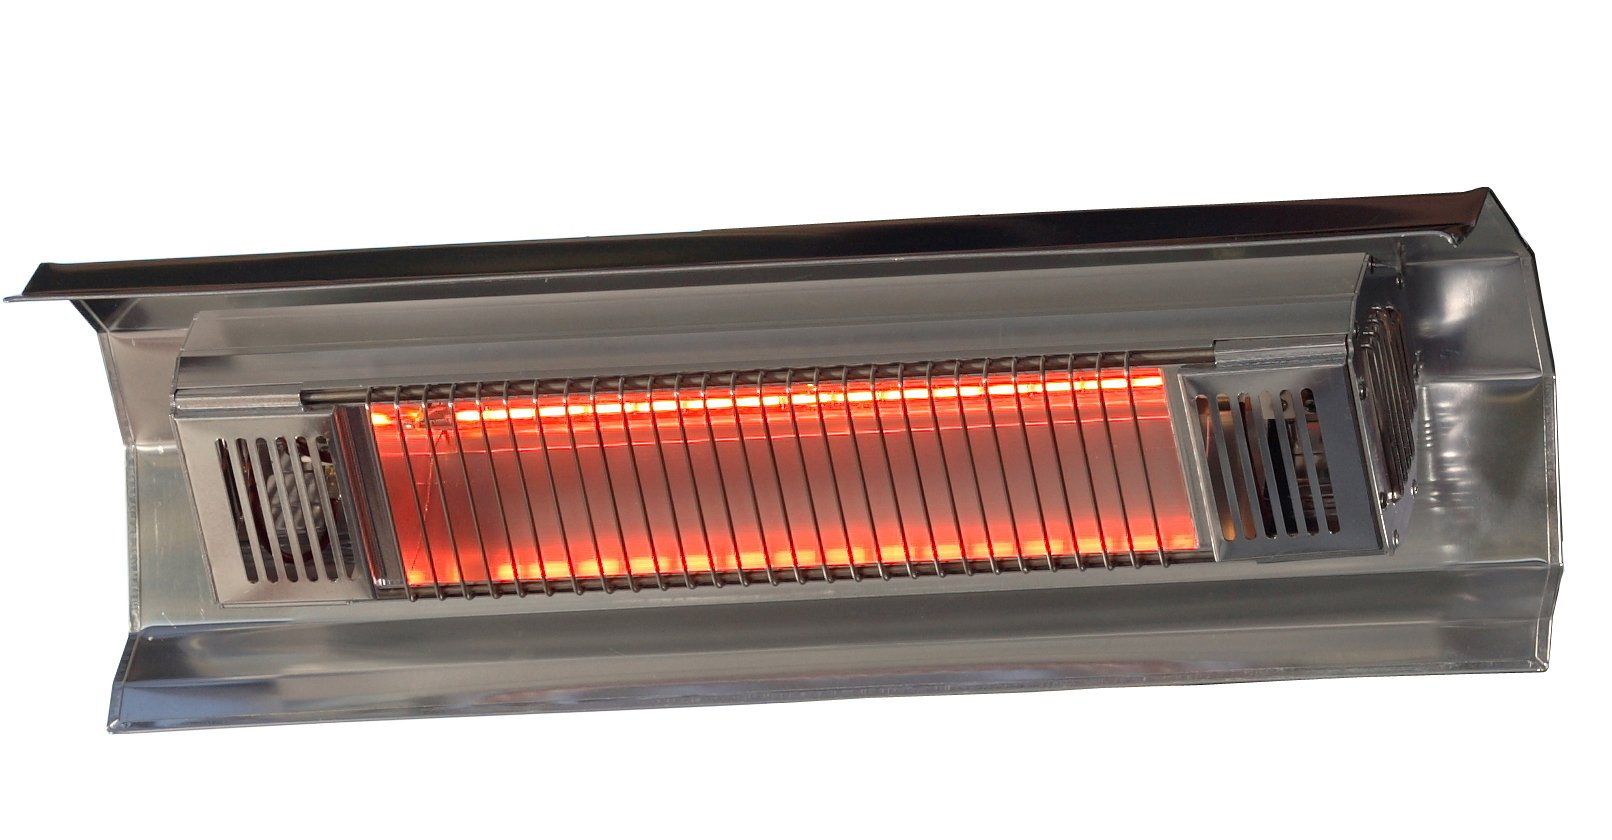 Fire Sense Indoor/Outdoor Wall-Mounted Infrared Heater, Silver by Fire Sense